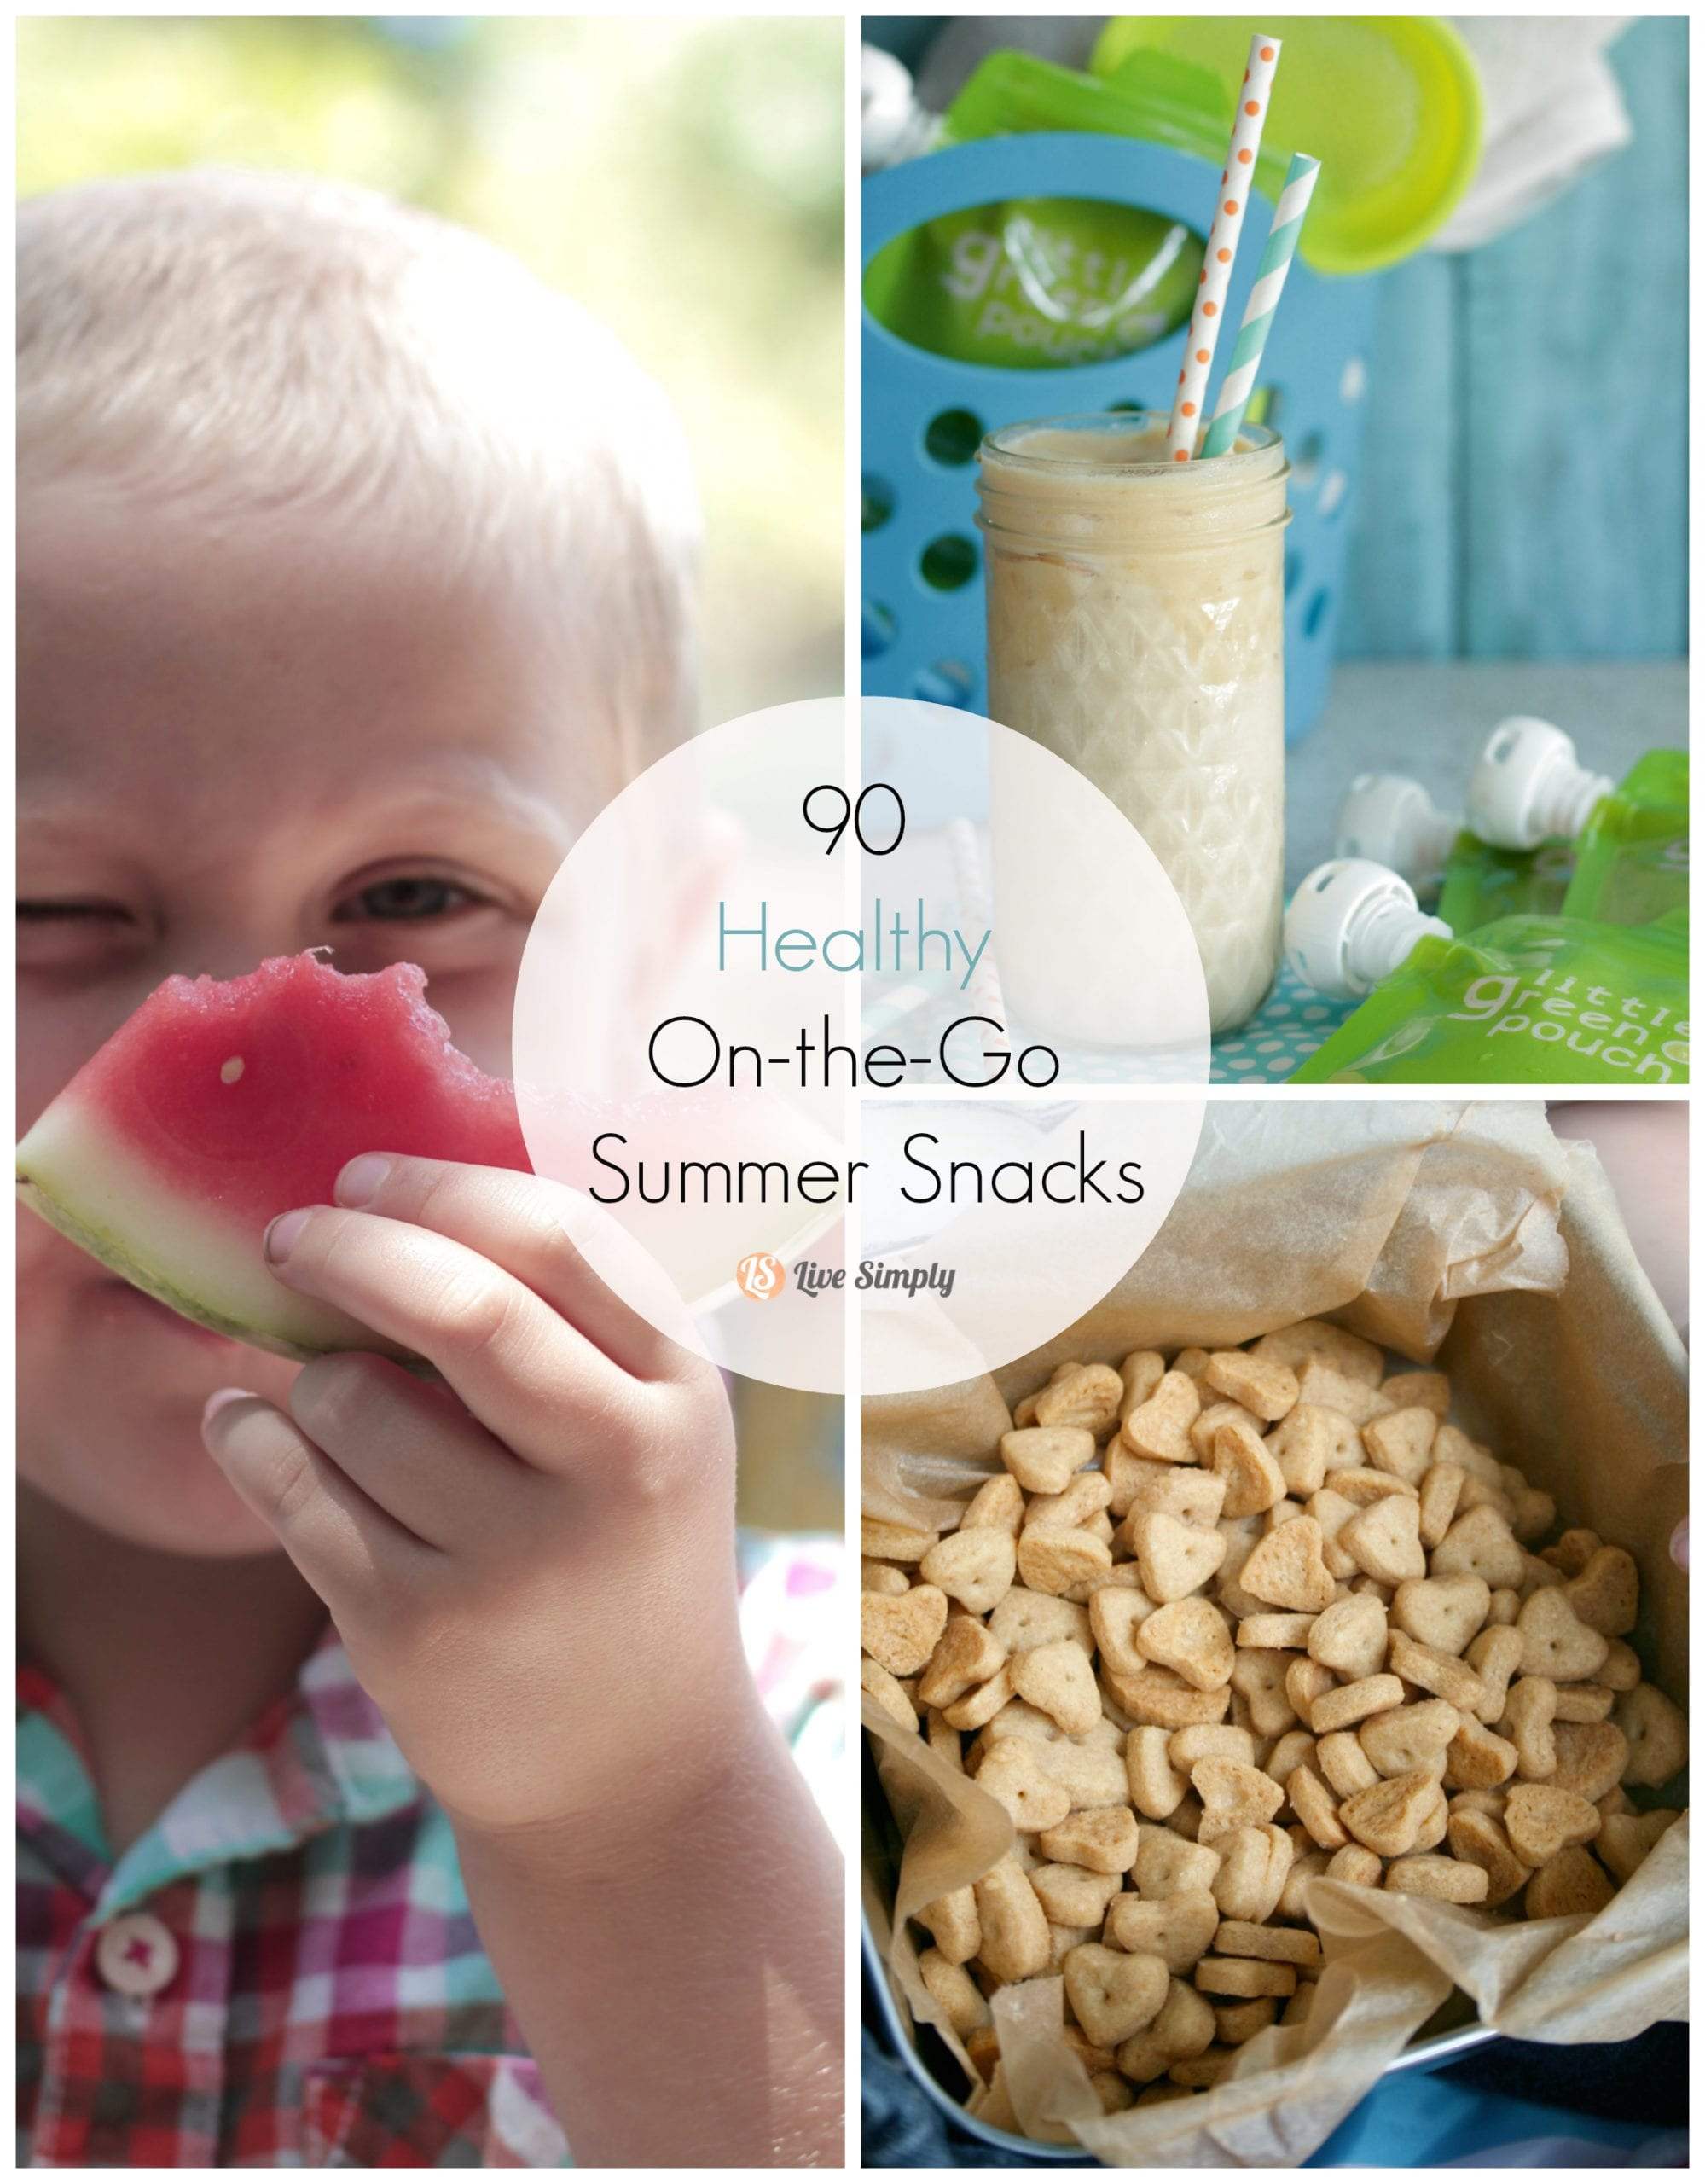 90 Healthy On-the-Go Summer Snacks for Kids